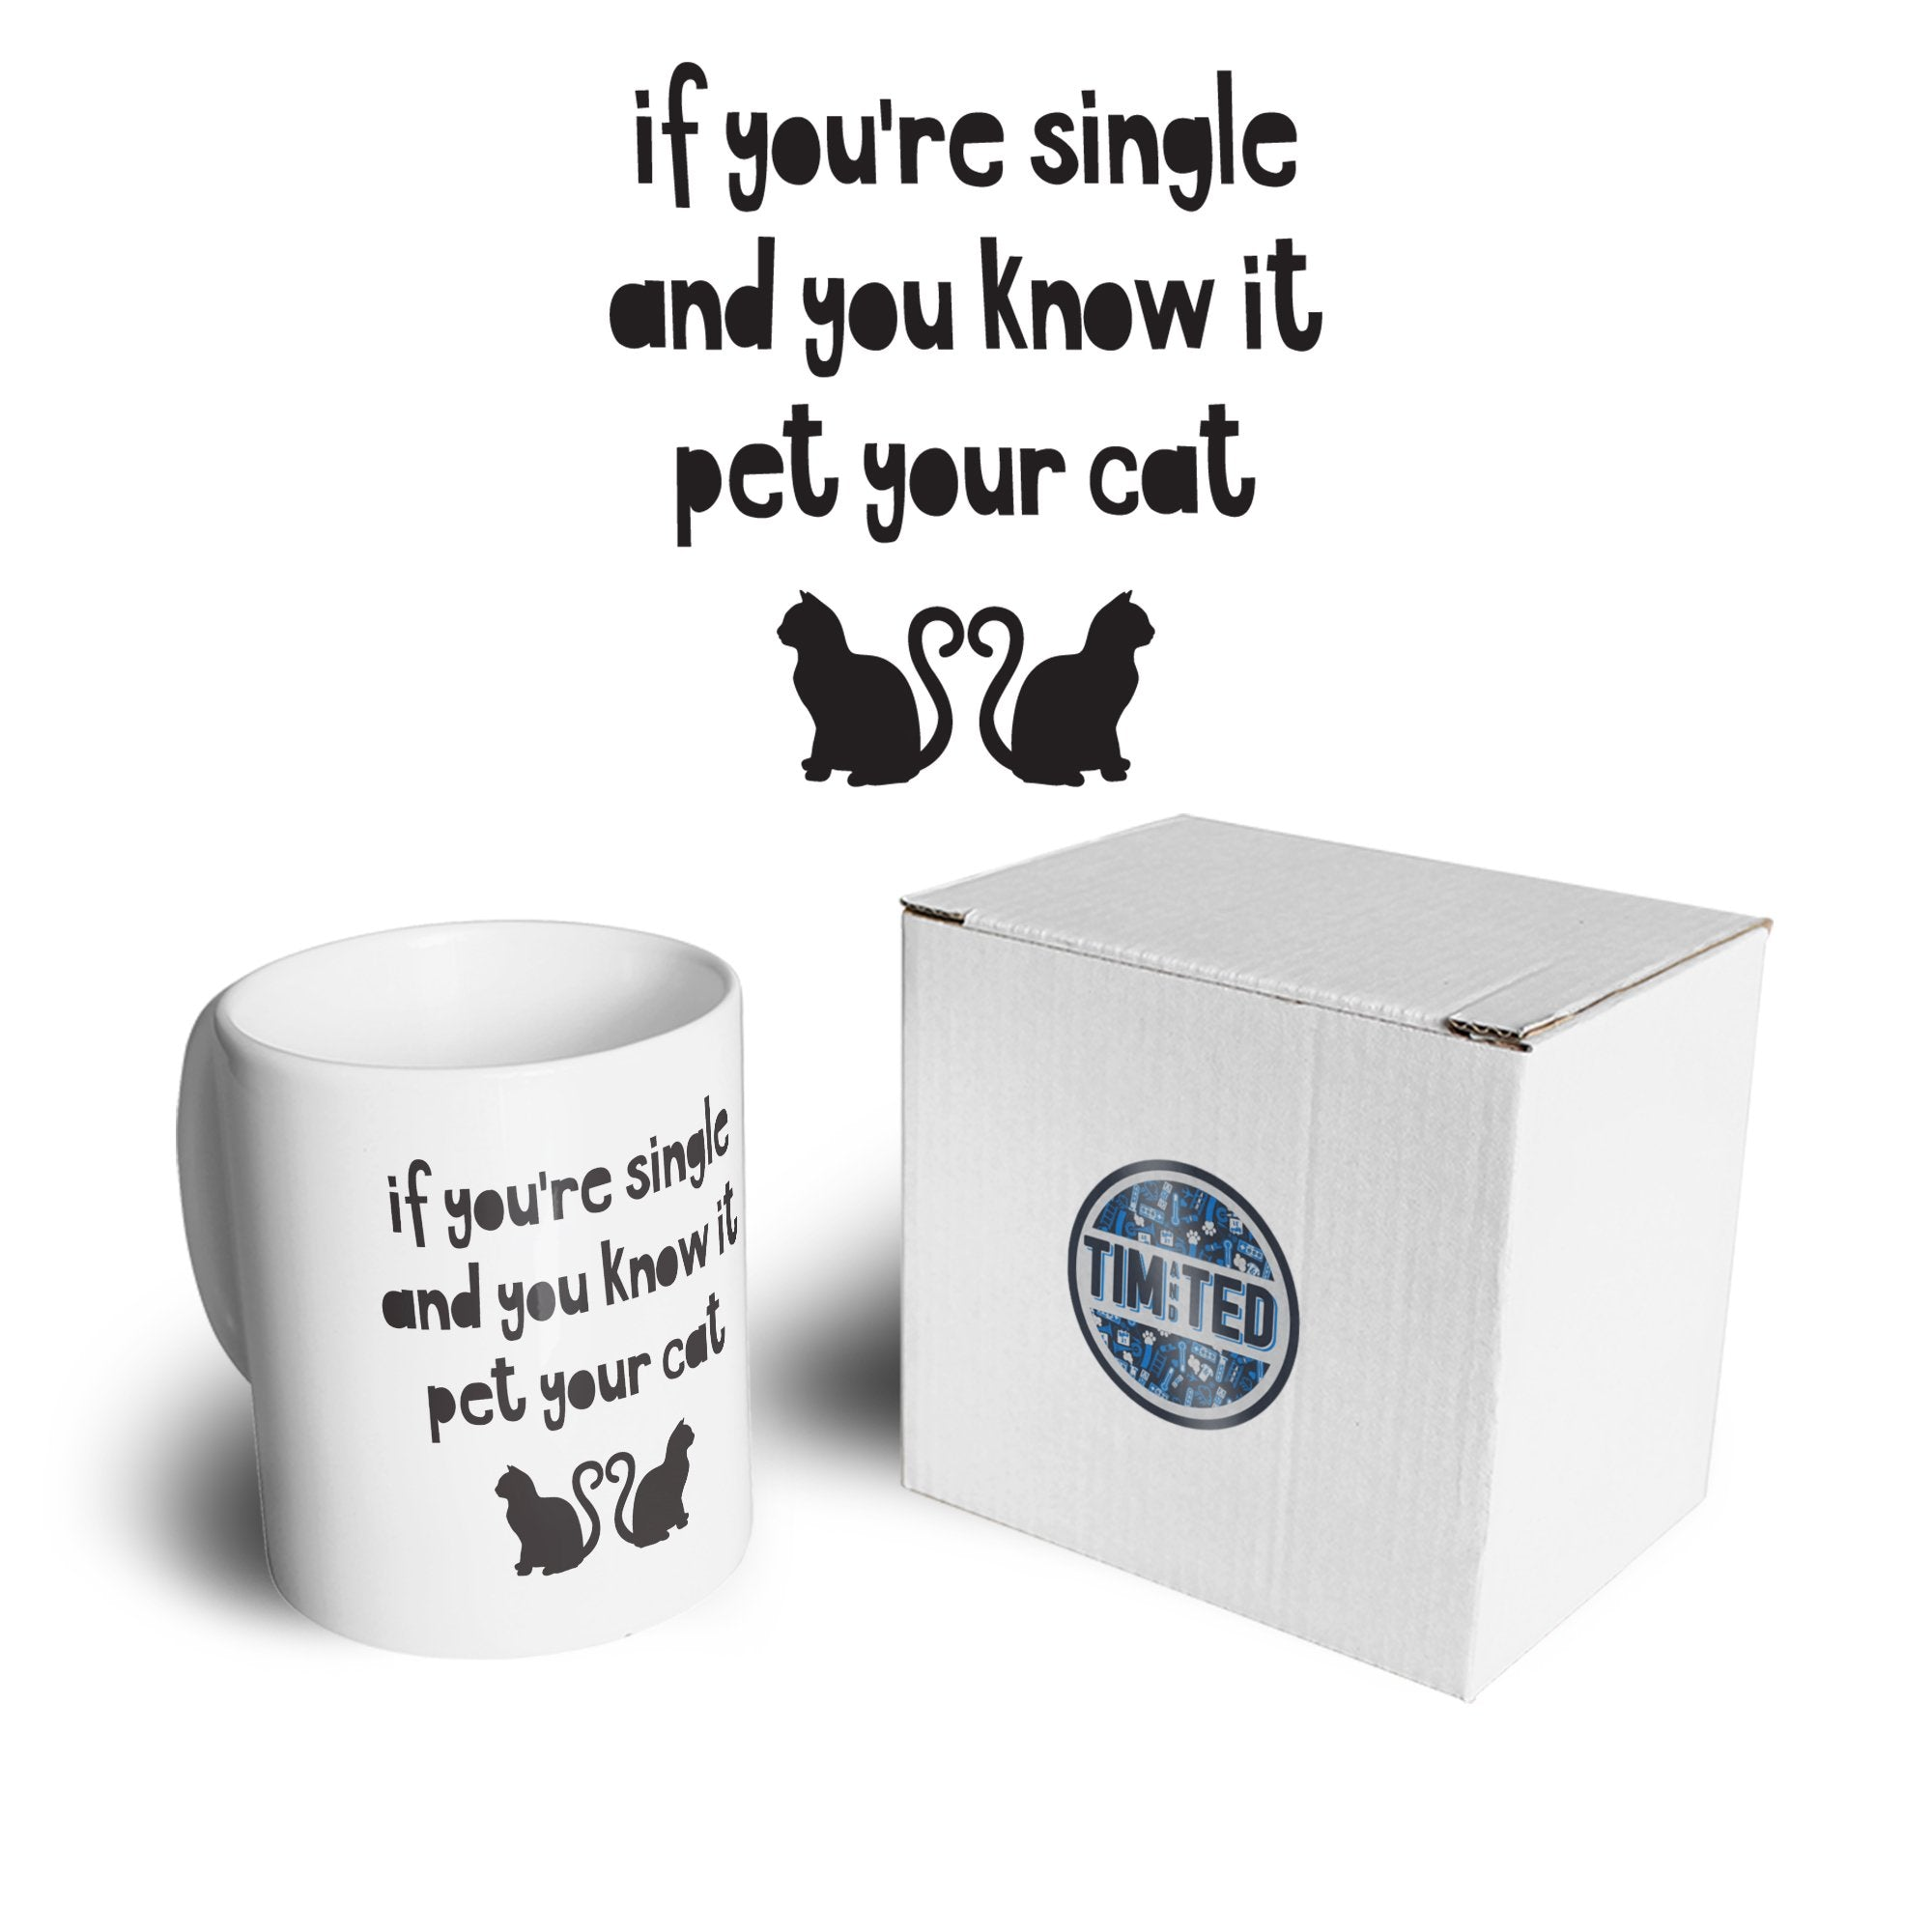 Valentines Mug Single And You Know It Joke Coffee Tea Cup